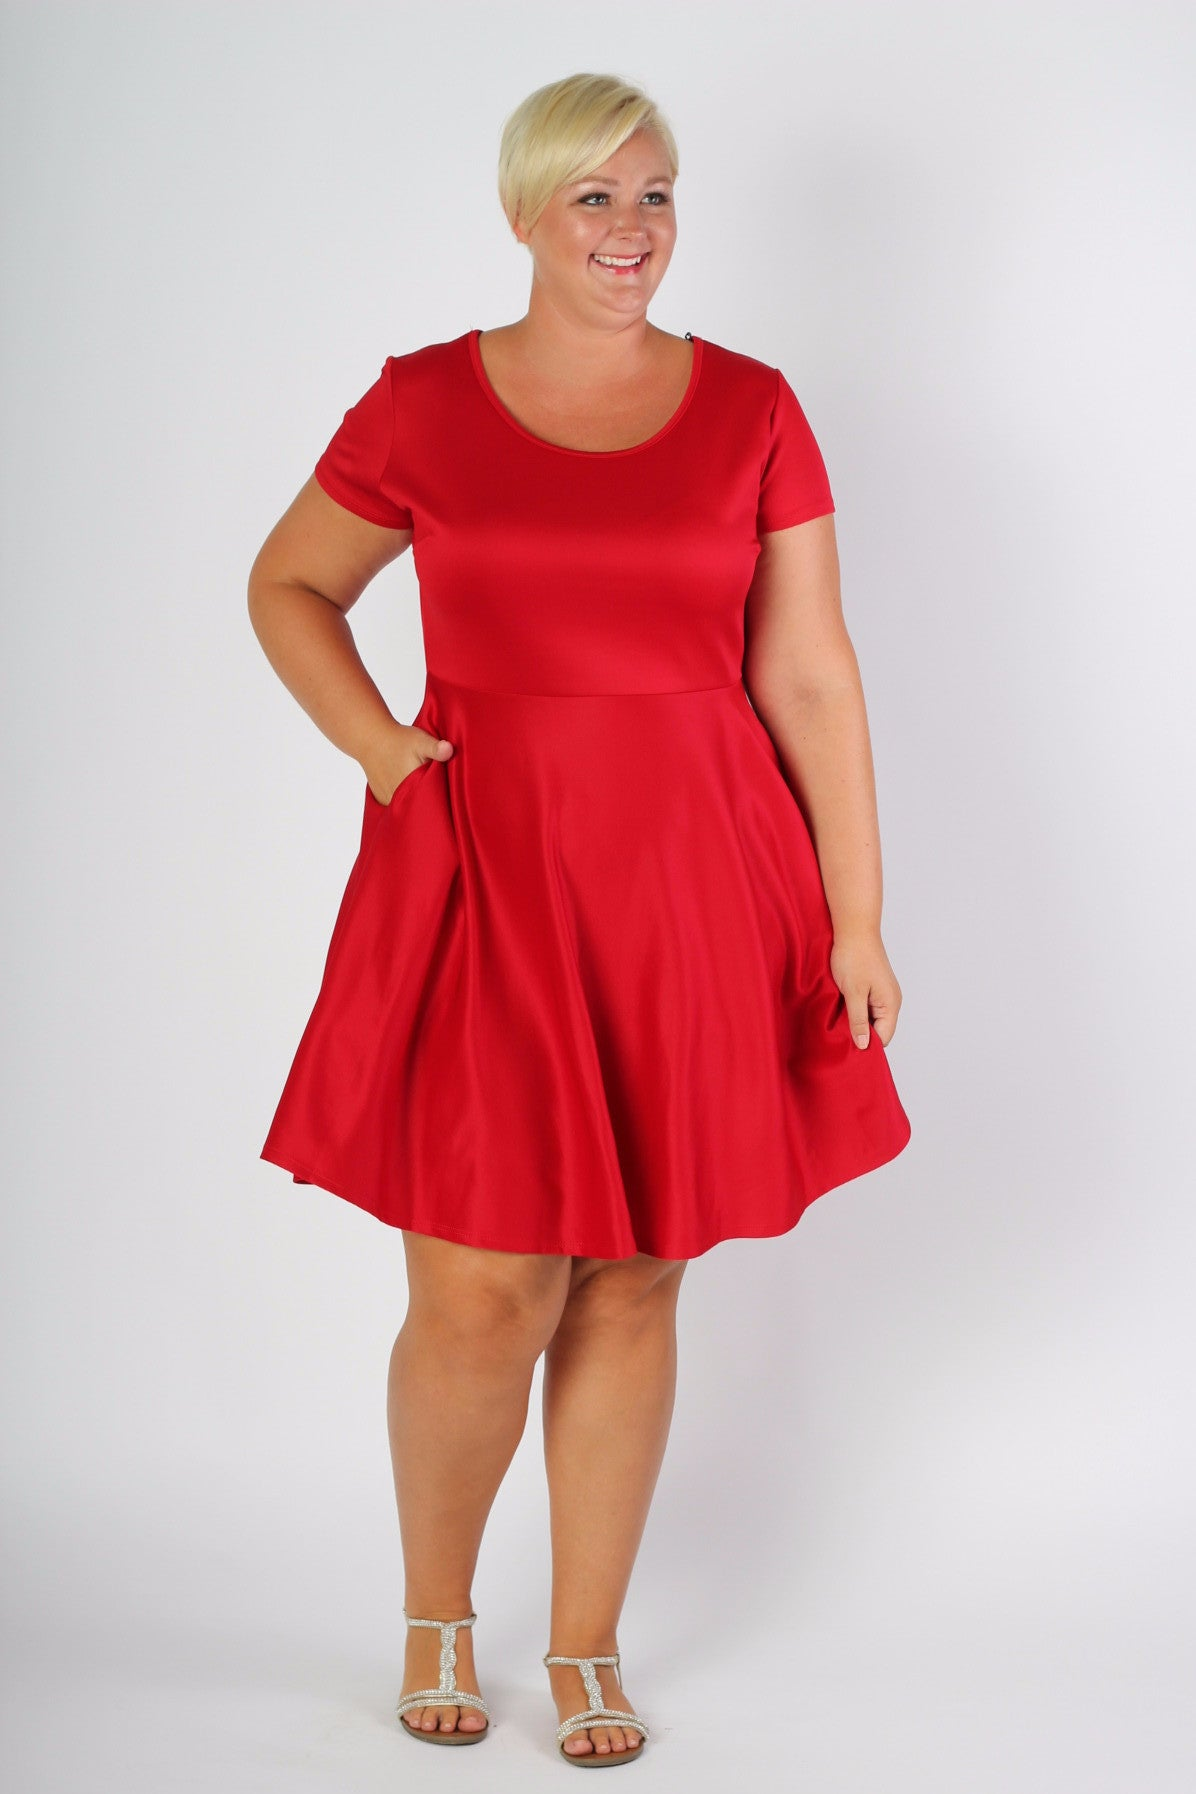 Our #1 Skater Dress now in more color and stripe options! This red dress features a new short sleeve and pockets. Our signature fit and flare silhouette perfect for any body type. Made with soft and forgiving scuba fabric, you will be comfortable and confident all day long in any situation! Plus, this gorgeous dress has pockets now! 96% Rayon, 4% Spandex Hand wash with cold water Do not bleach Hang or line dry Shop the Polyvore Size Note: Be sure to purchase the size that would fit your top (don't worry about the bottom size). The fabric is nice and stretchy and true to size. Front length Back length Arm hole Skirt length Size:14/16 39